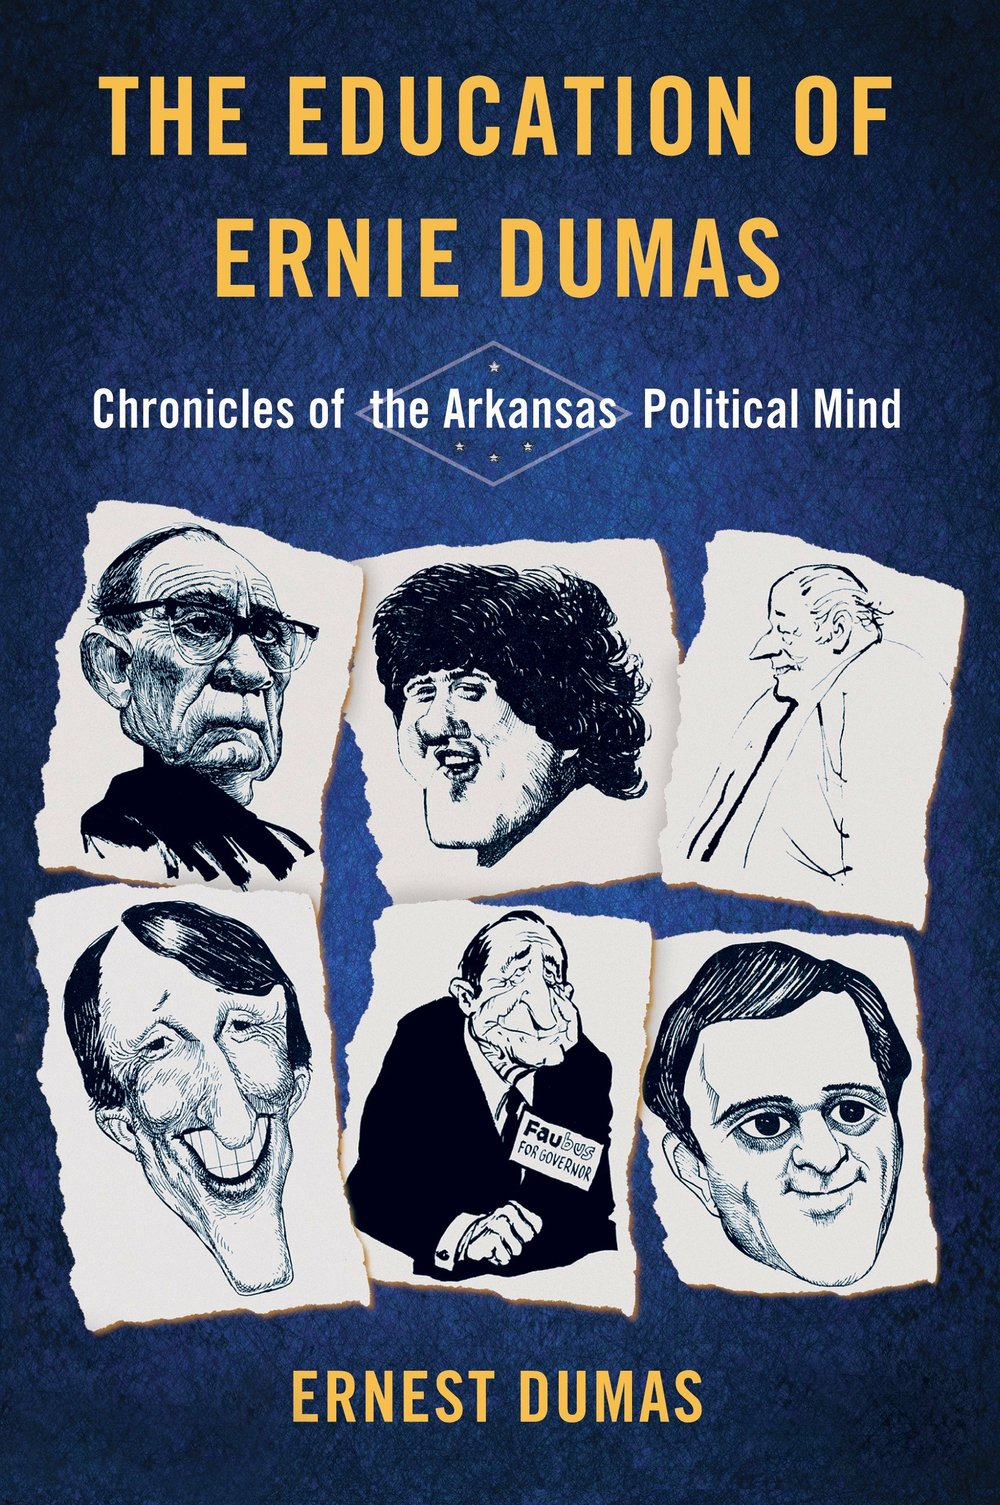 Veteran journalist and political observer Ernie Dumas discusses and signs copies of his new memoir, The Education of Ernie Dumas, Monday at Little Rock's Ron Robinson Theater.